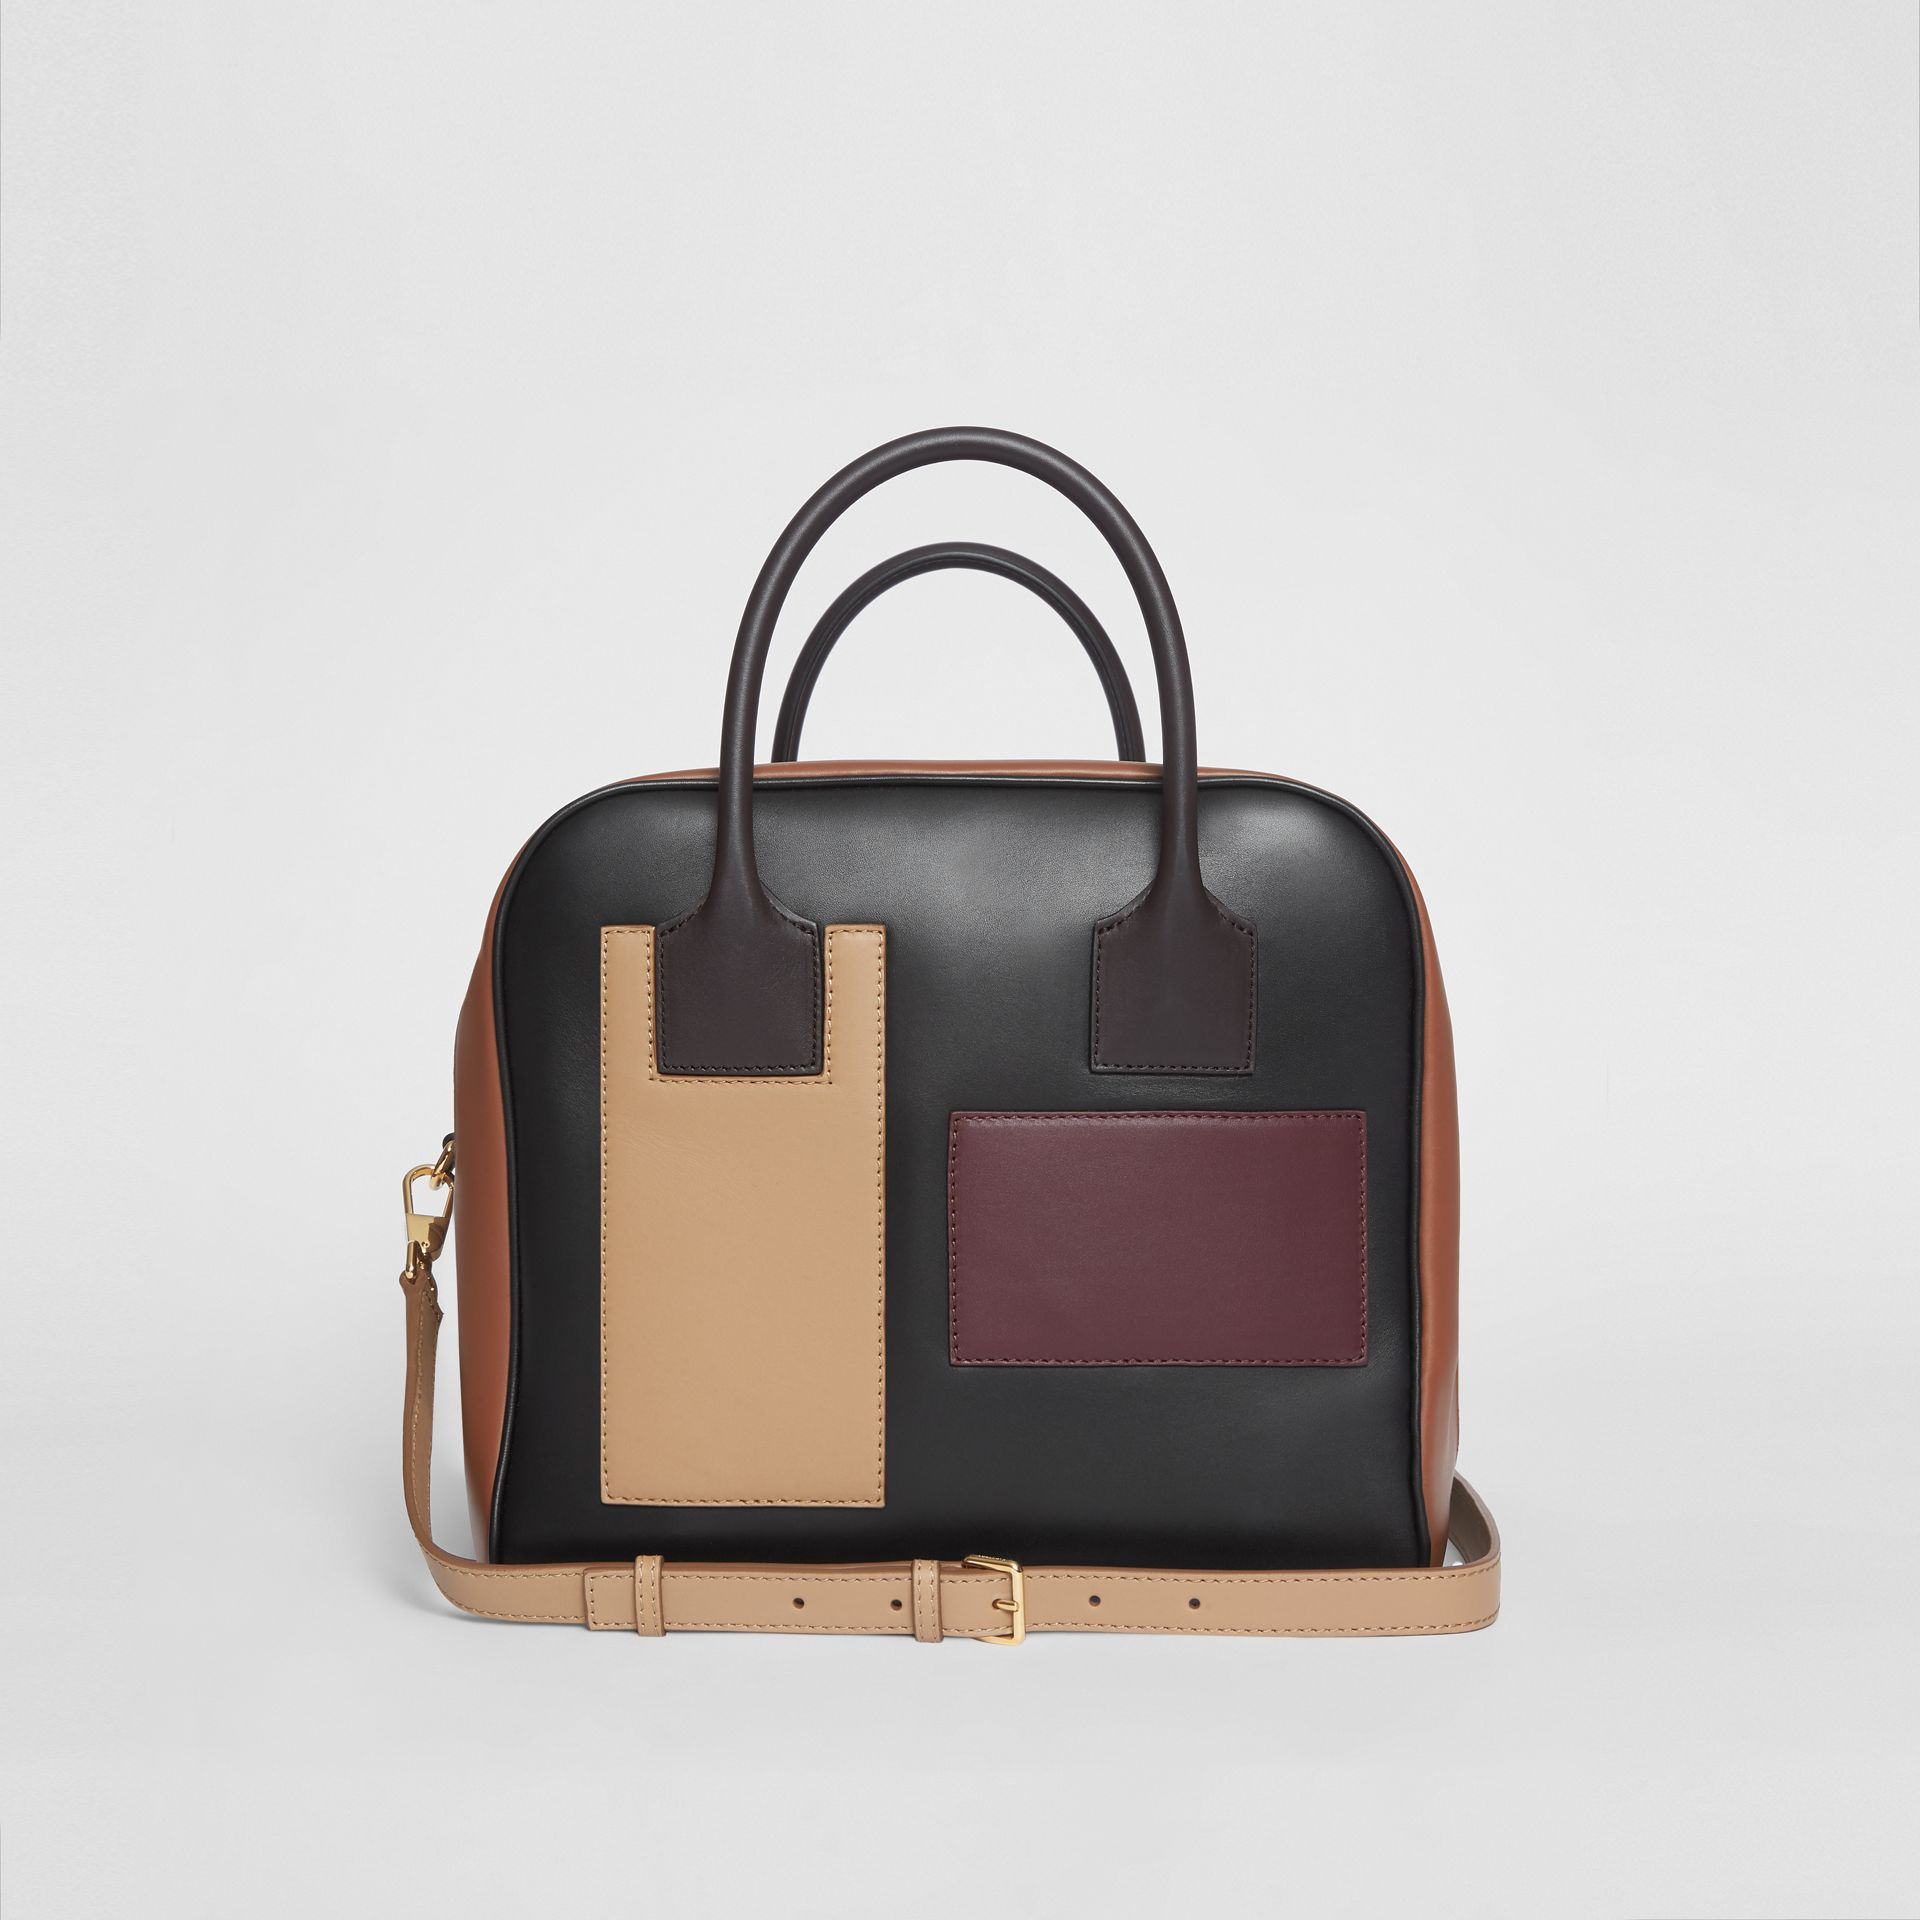 Medium Panelled Leather Cube Bag in Black - Women | Burberry Hong Kong - gallery image 7